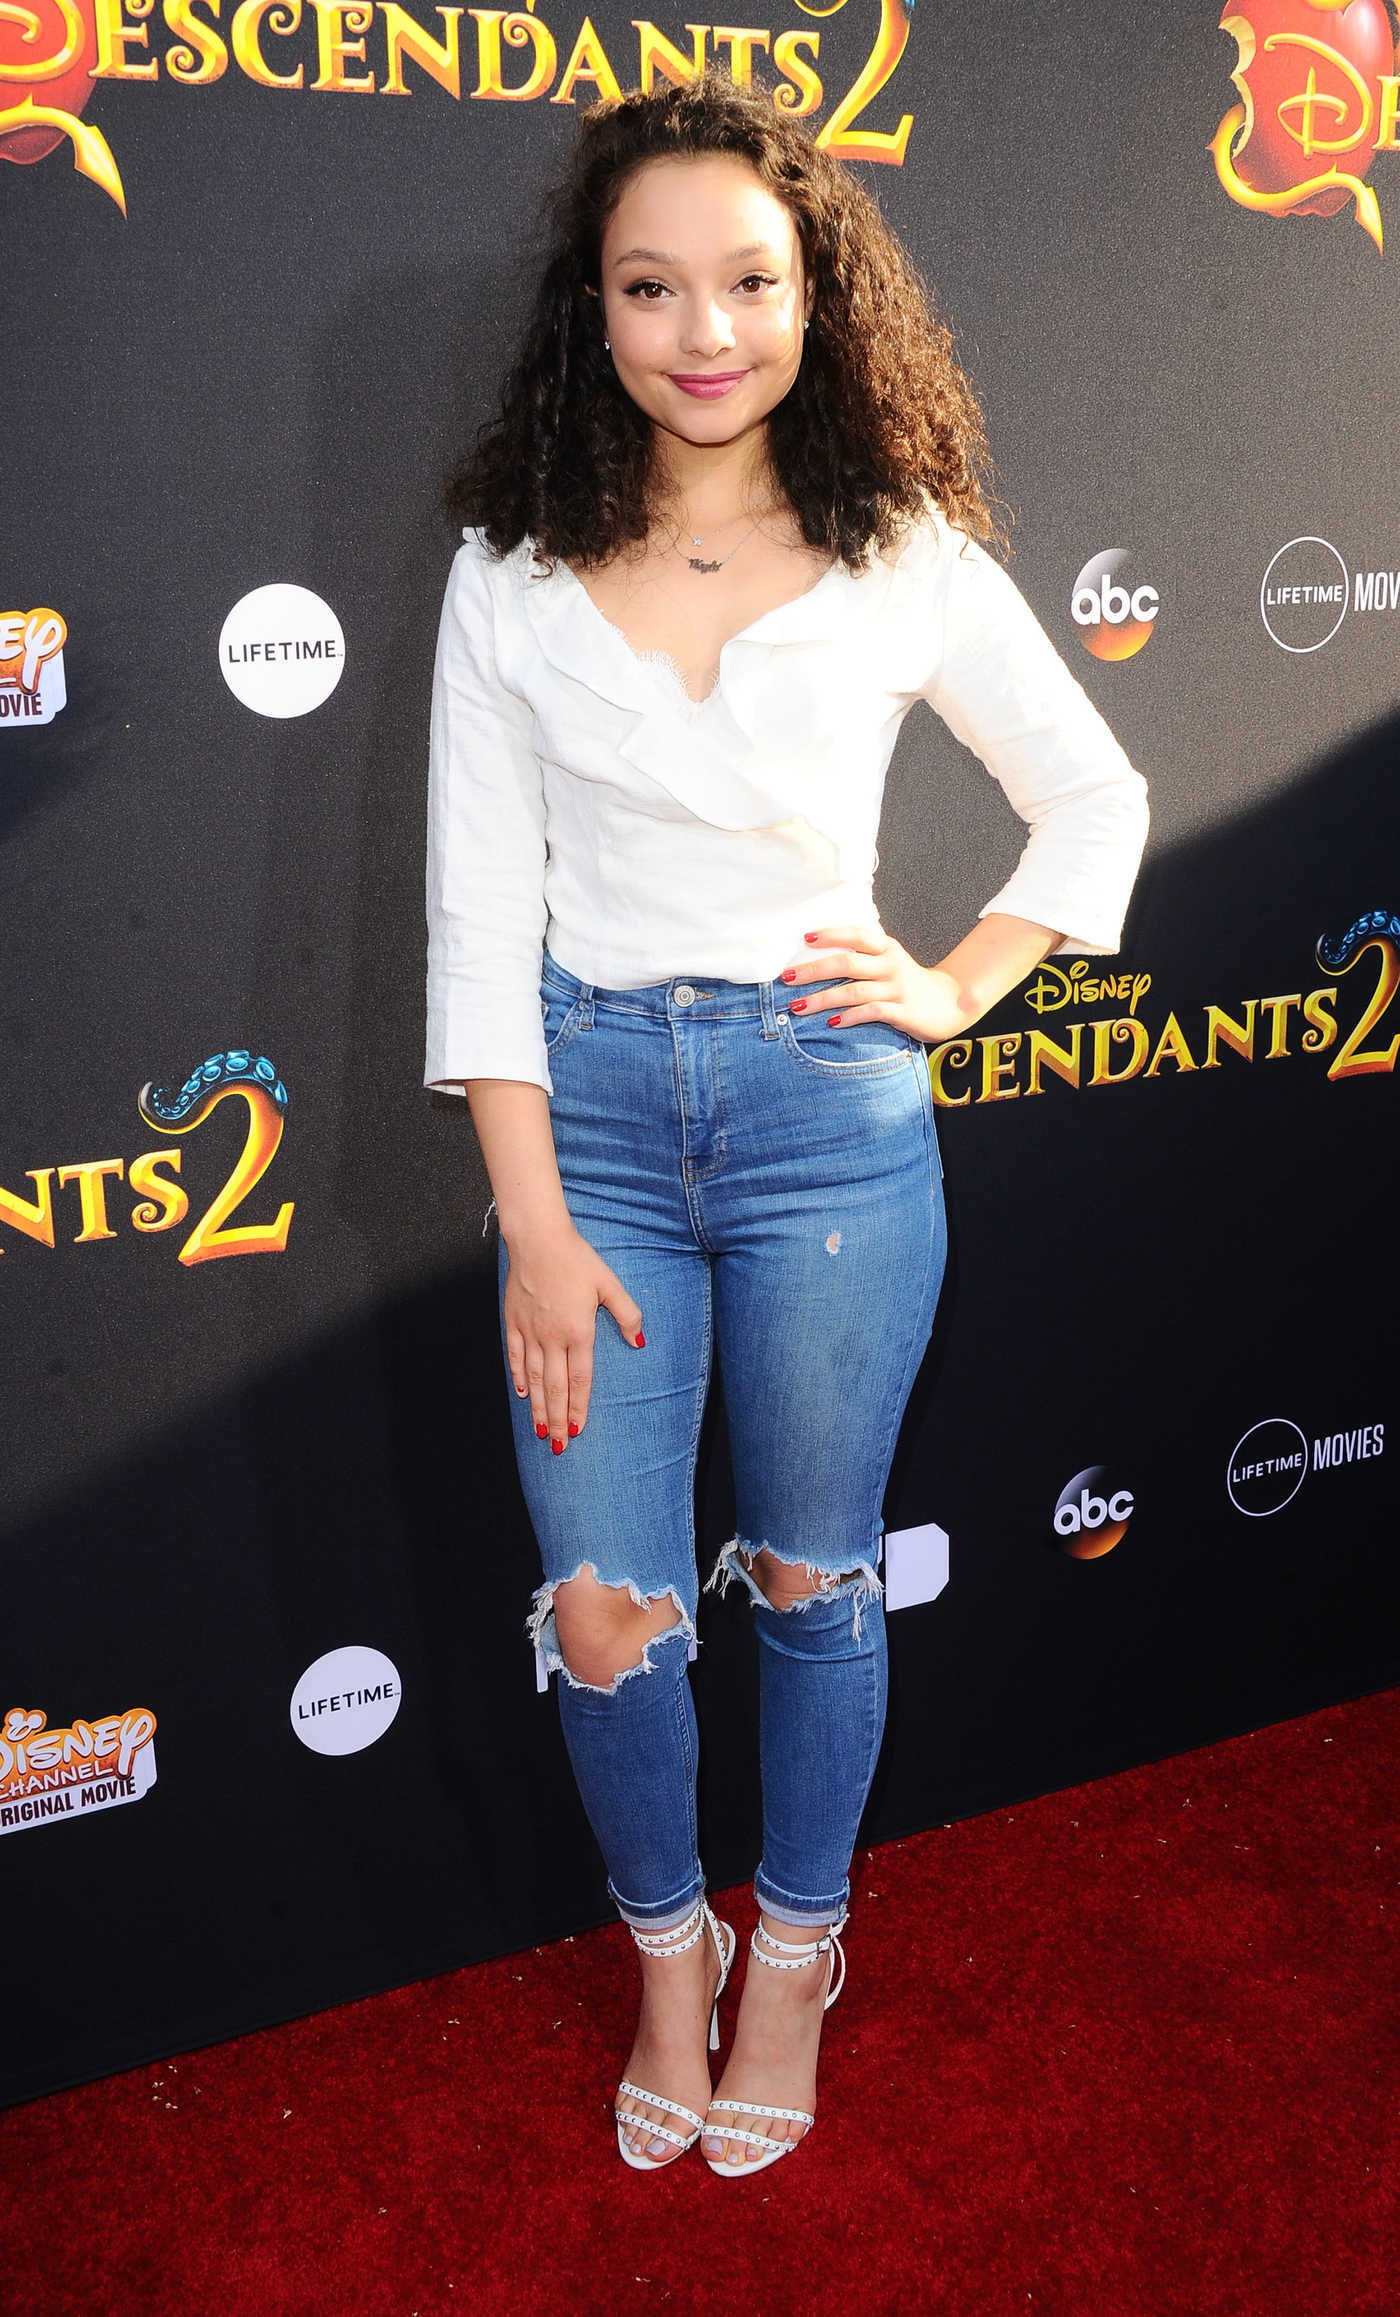 Kayla Maisonet at the Descendants 2 Premiere in Los Angeles 07/11/2017